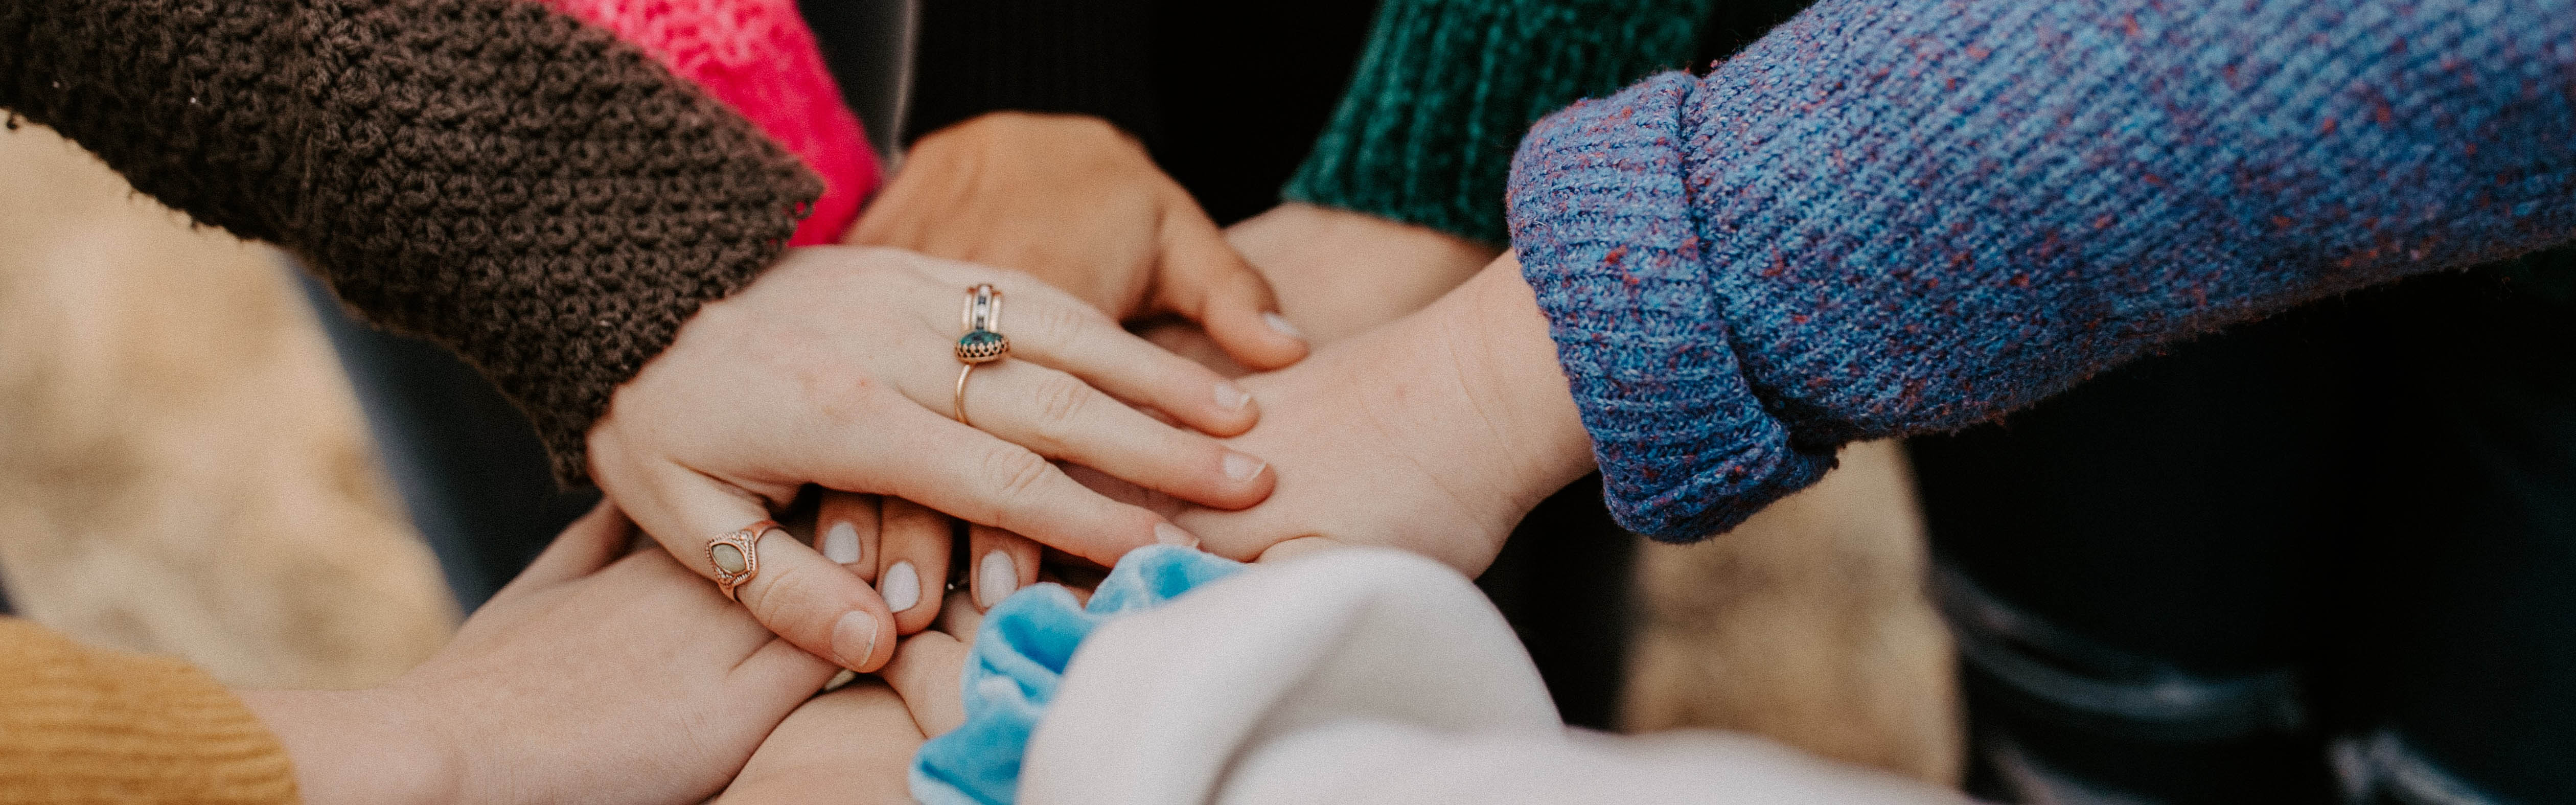 Stock image of hands together